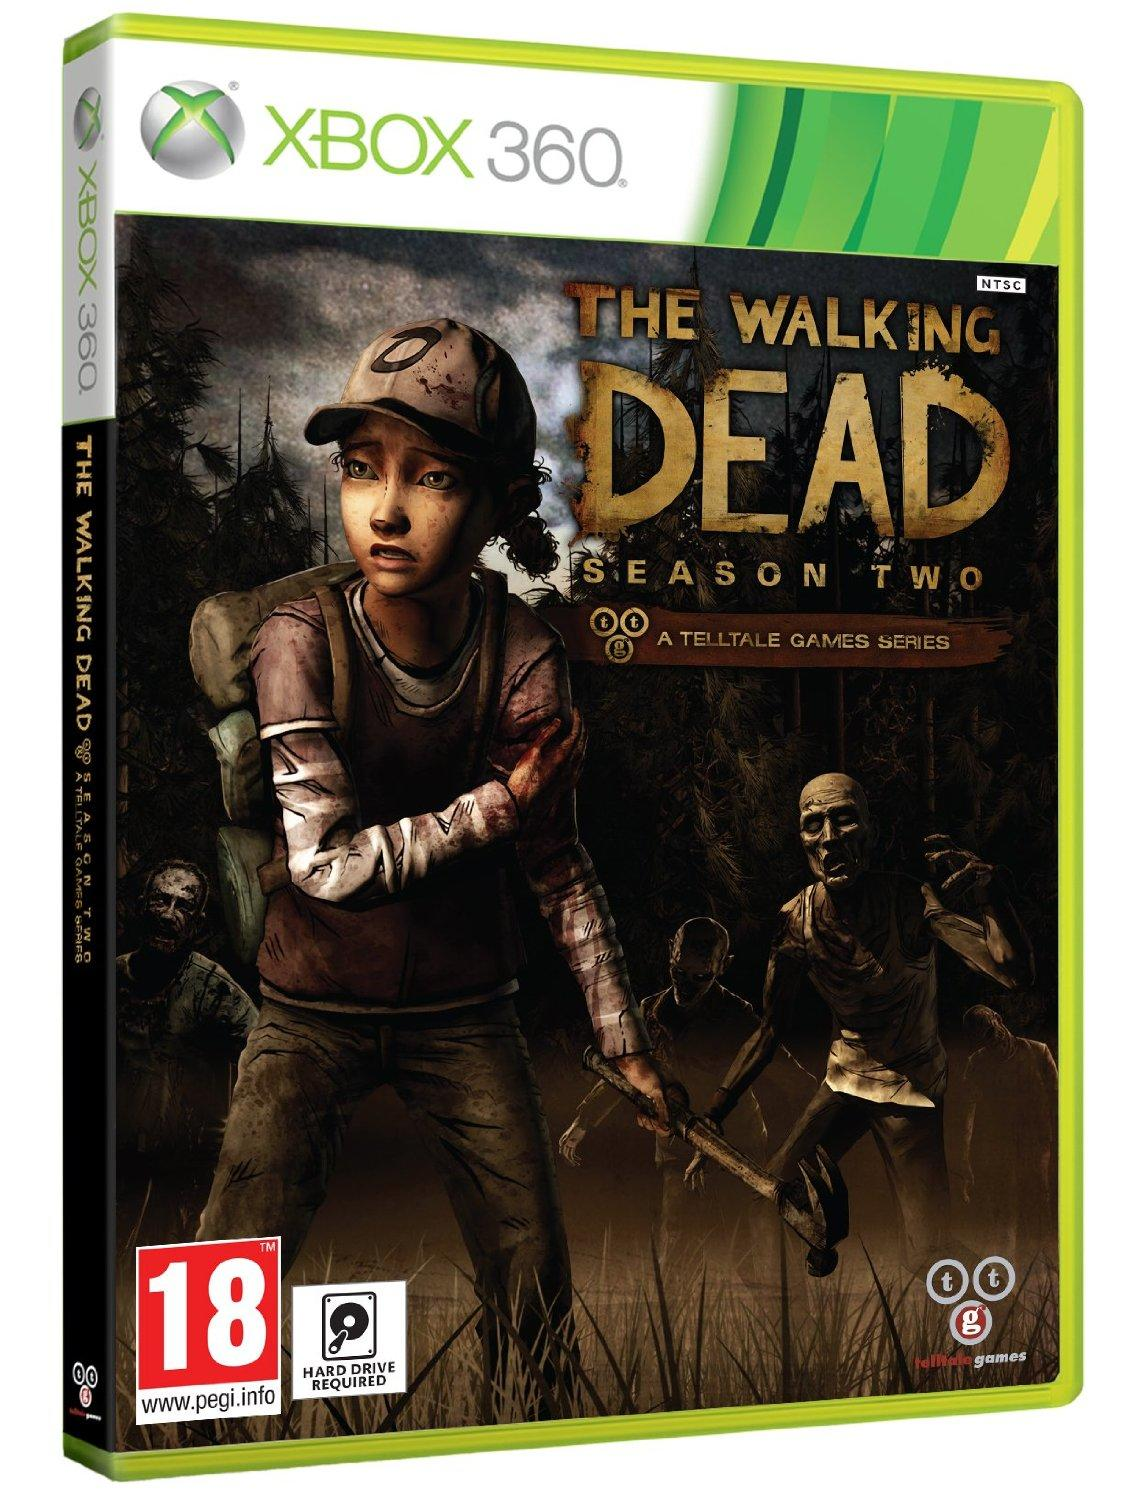 The Walking Dead Season Two Xbox 360